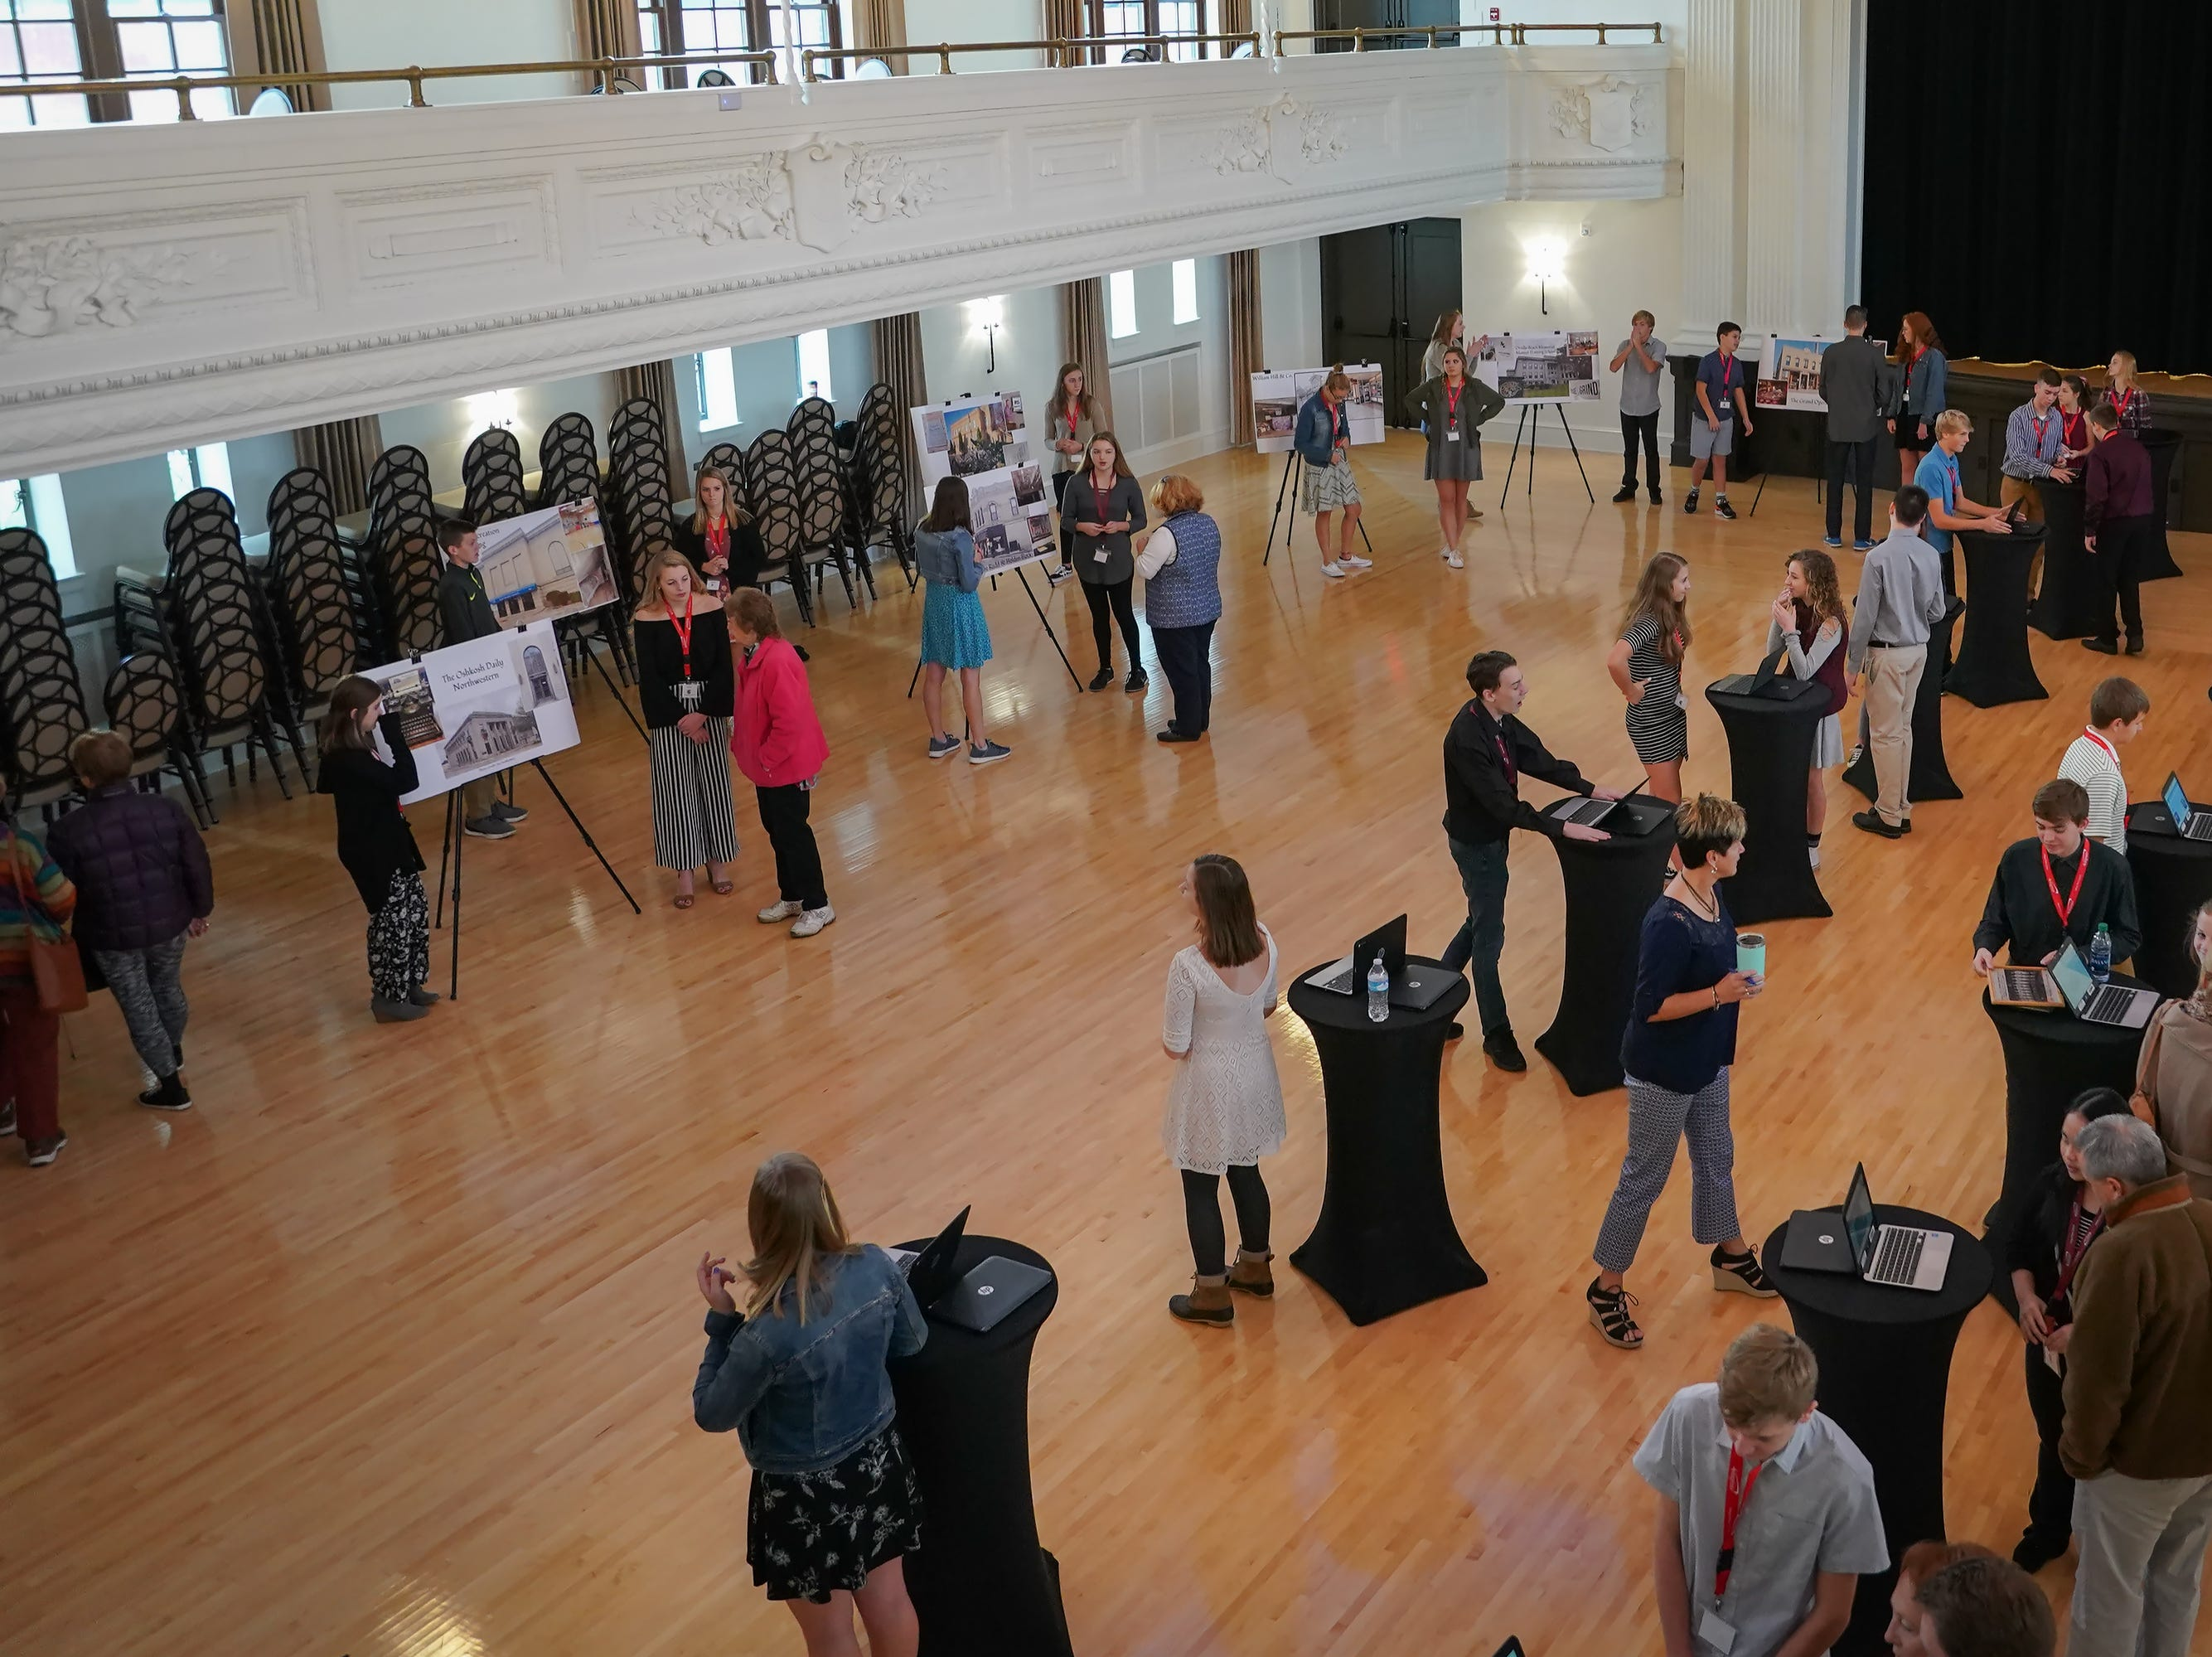 People attend the Oshkosh North Communities program's Historic Oshkosh event Tuesday at The Howard.